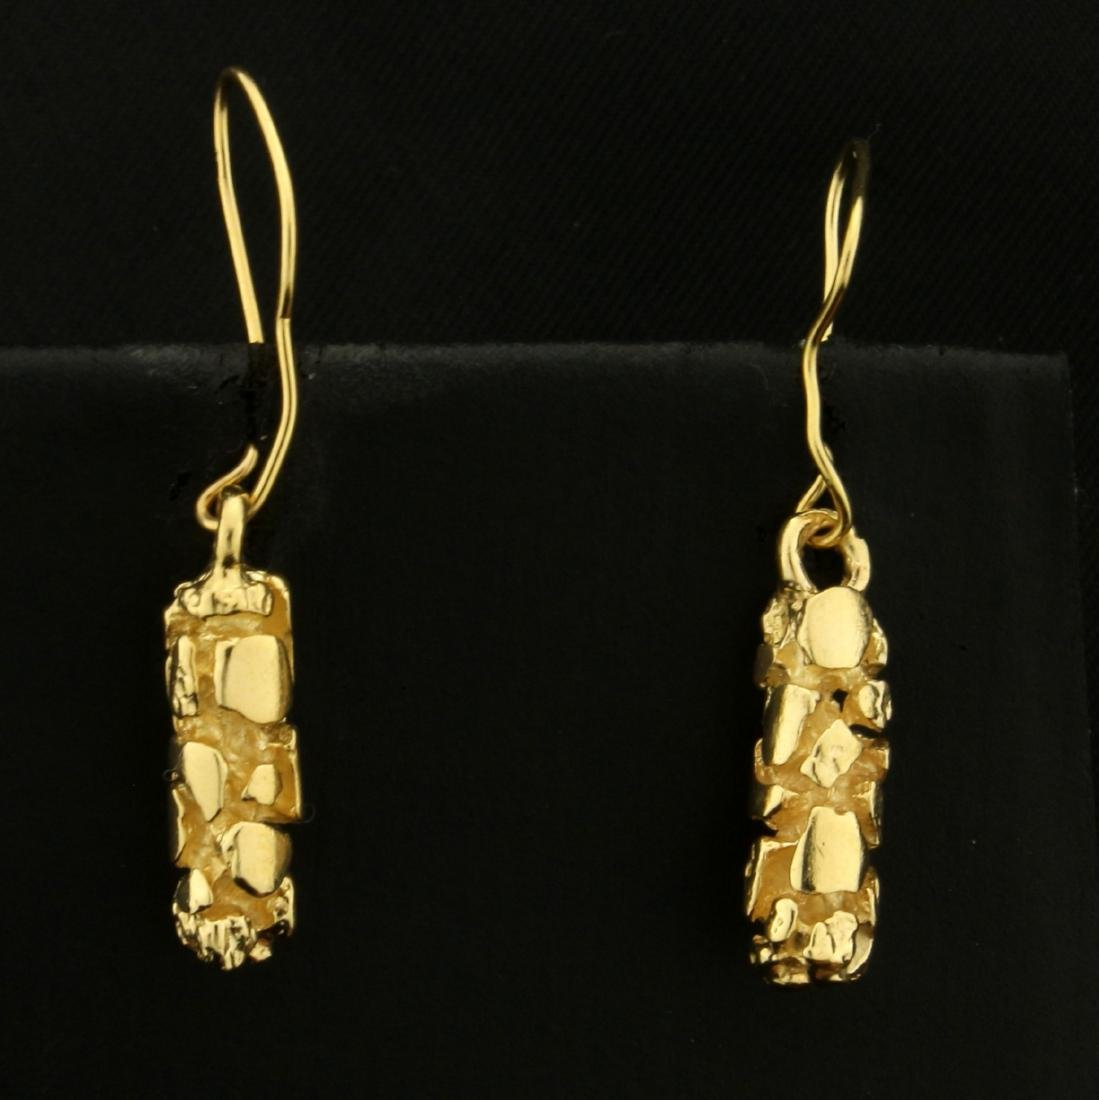 Dangling Gold Nugget Style Earrings in 14K Yellow Gold